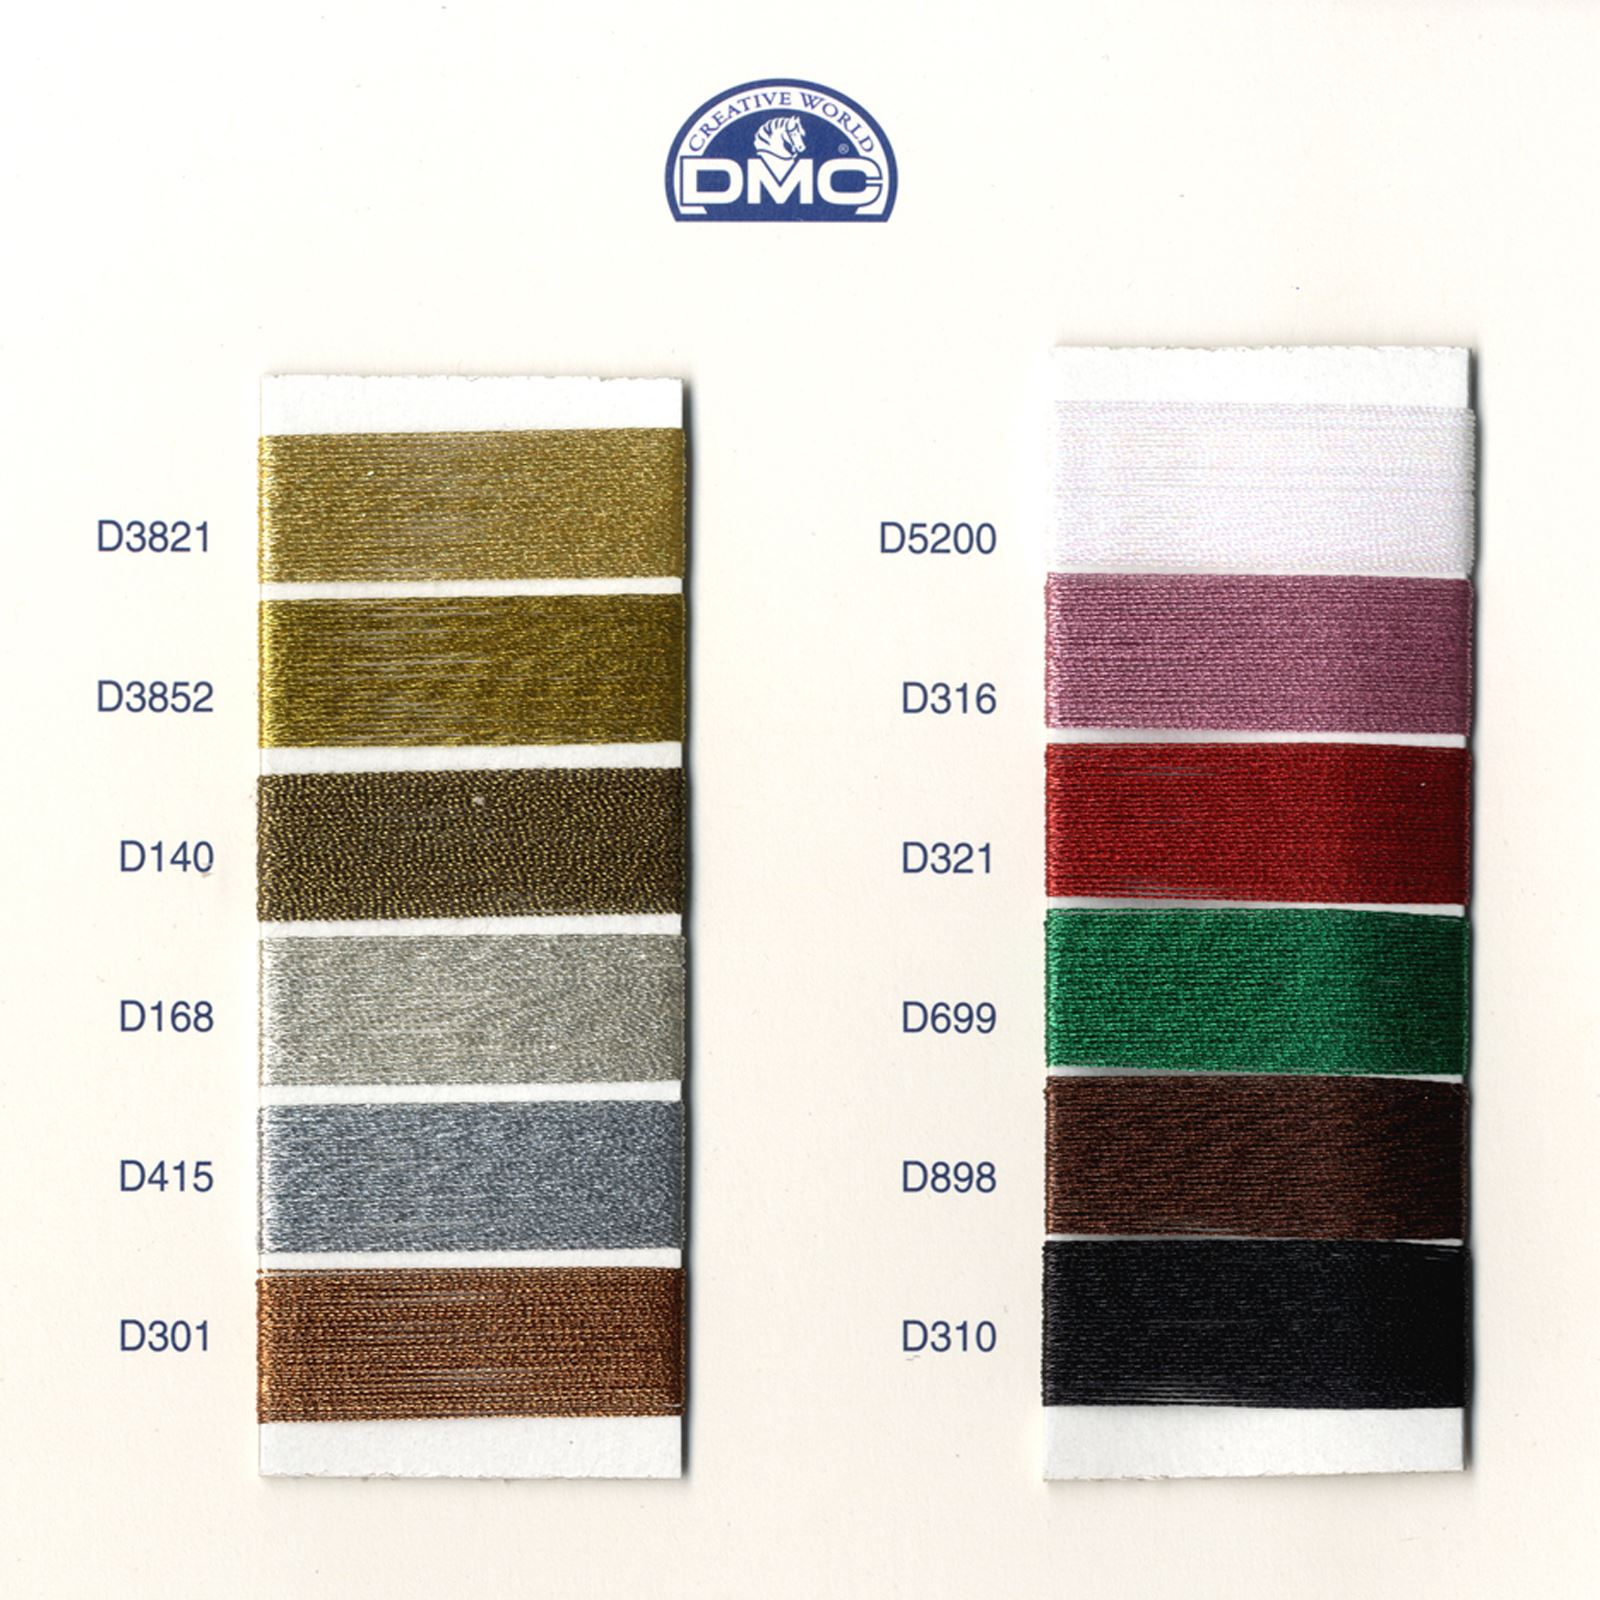 DMC-Diamant-Metallic-Embroidery-Thread-35m-Spool-Cross-Stitch thumbnail 32